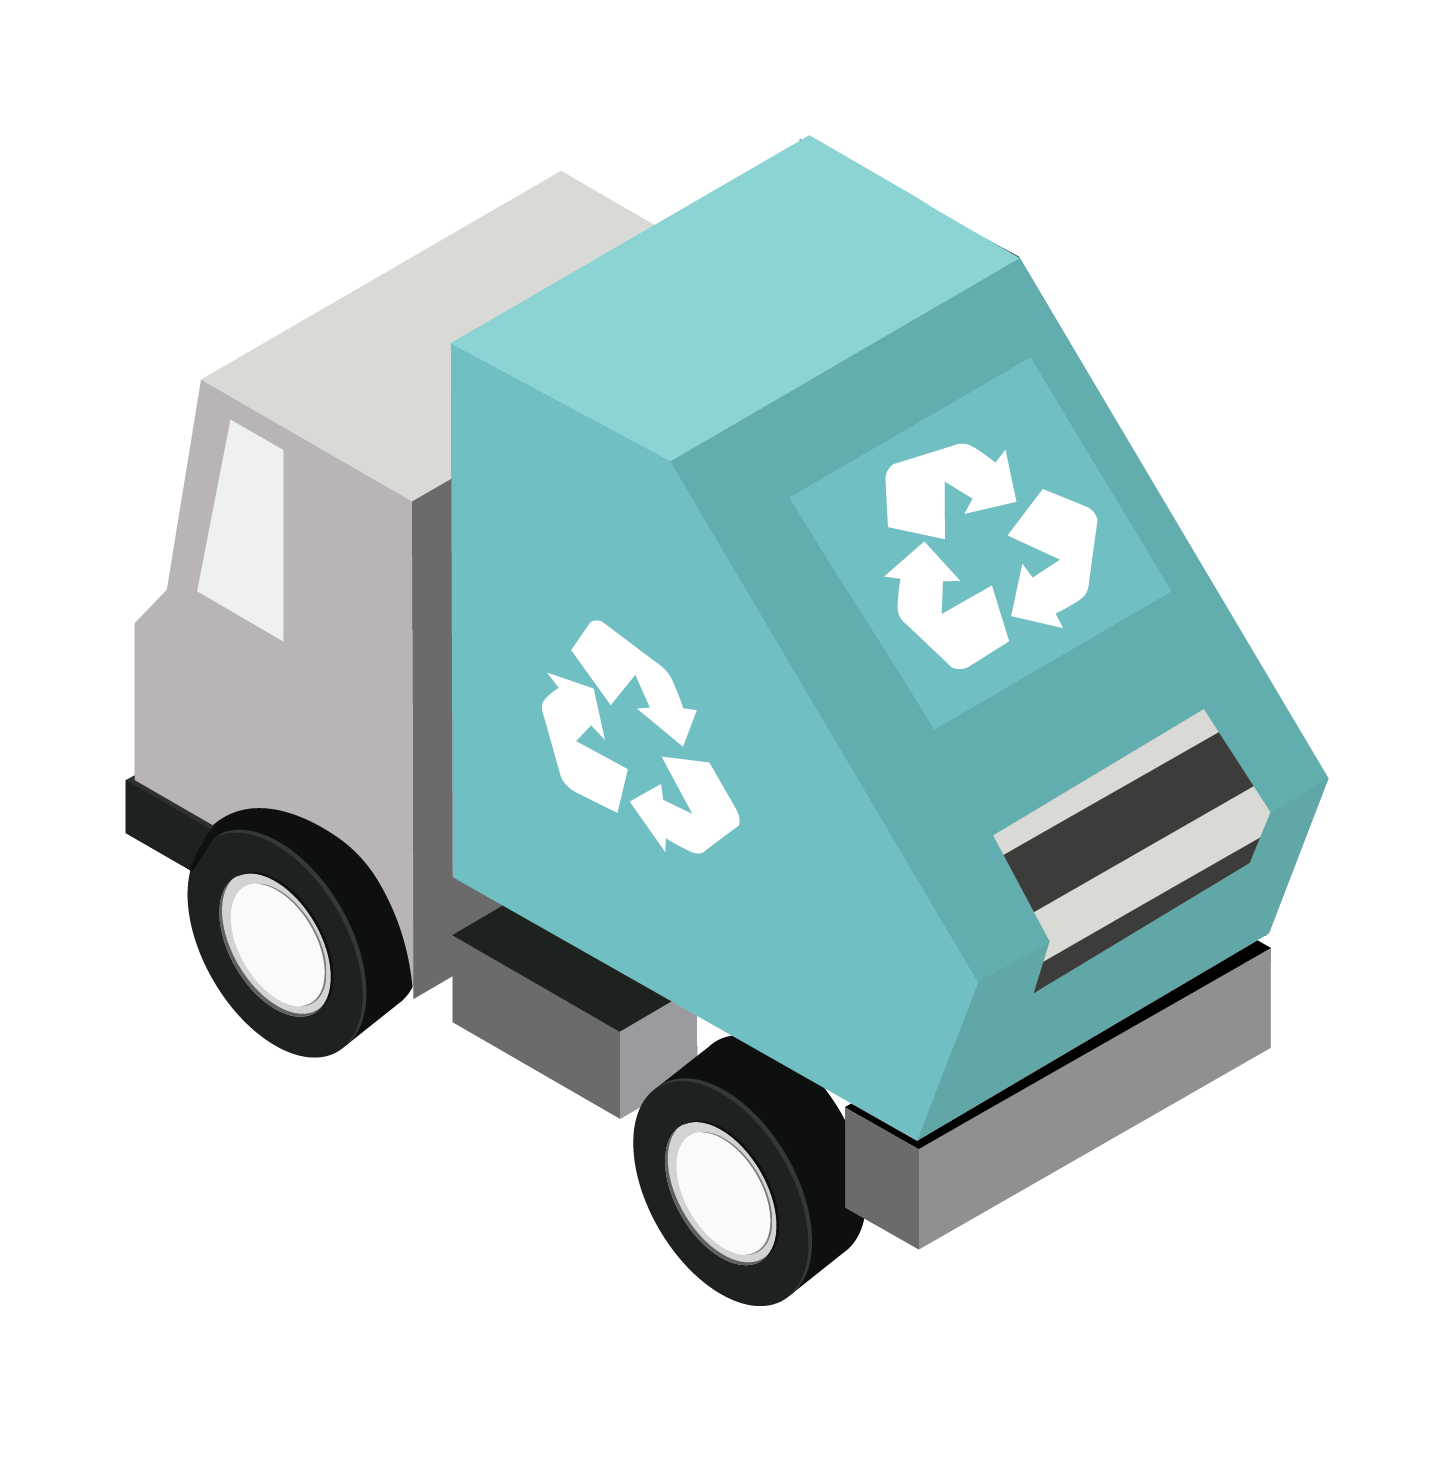 Toffu Isometric Pack Cars For More Https Www Toffu Co Download Link Https Www Toffu Co Downloads Garbage Truck Packing Car Police Cars